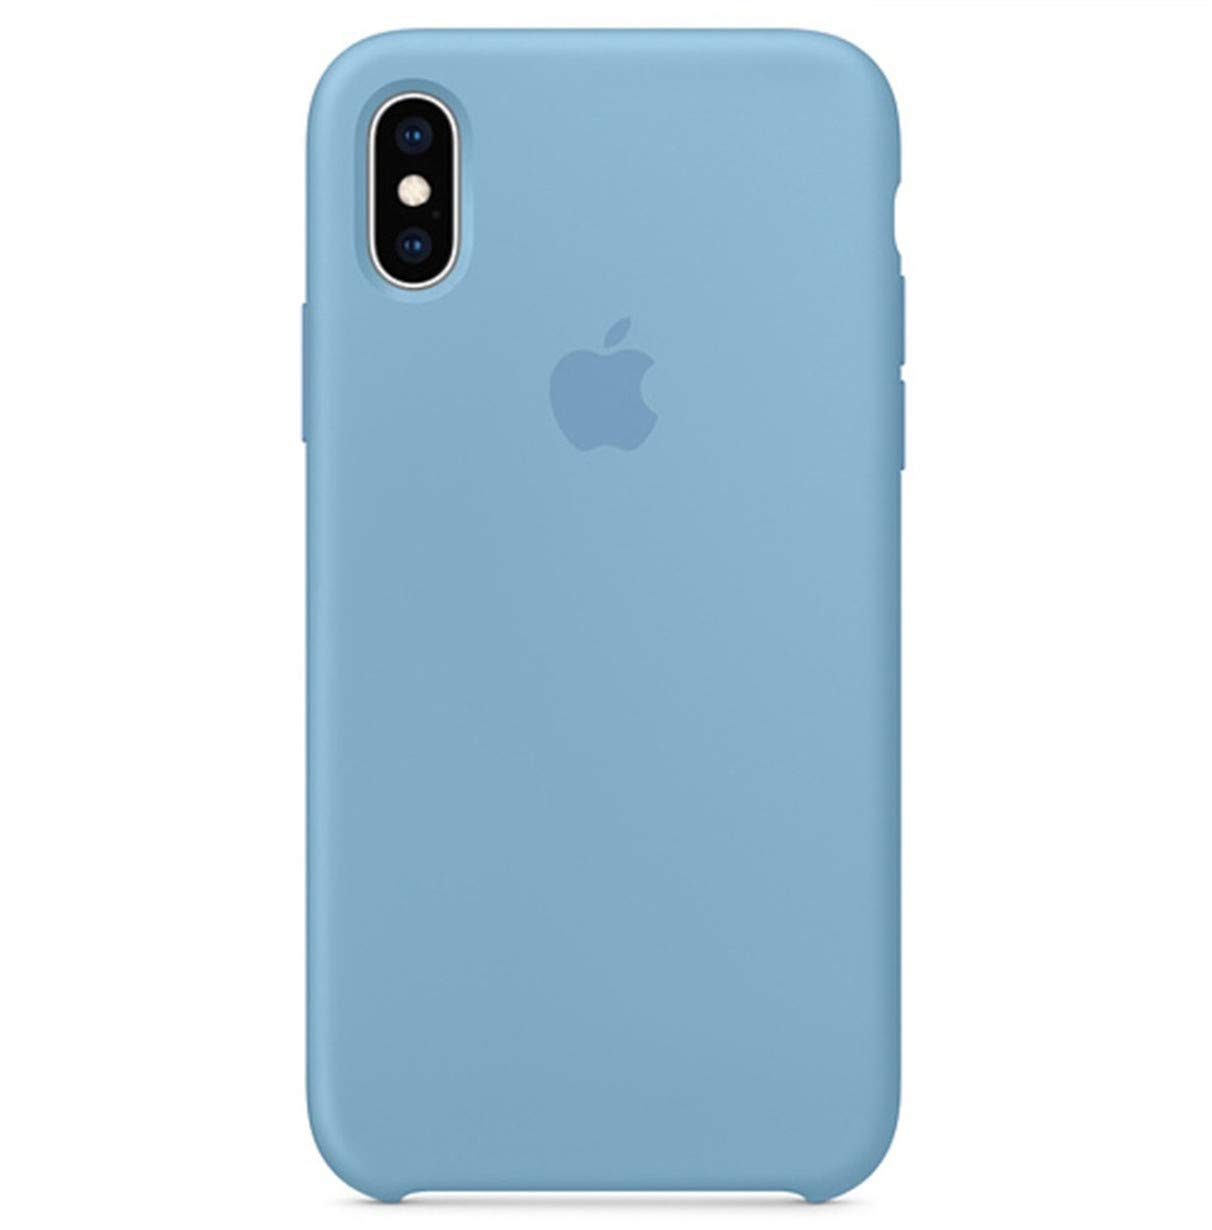 Maycase Compatible for iPhone Xs MAX Case, Liquid Silicone Case Compatible with iPhone Xs MAX 6.5 inch (Cornflower)